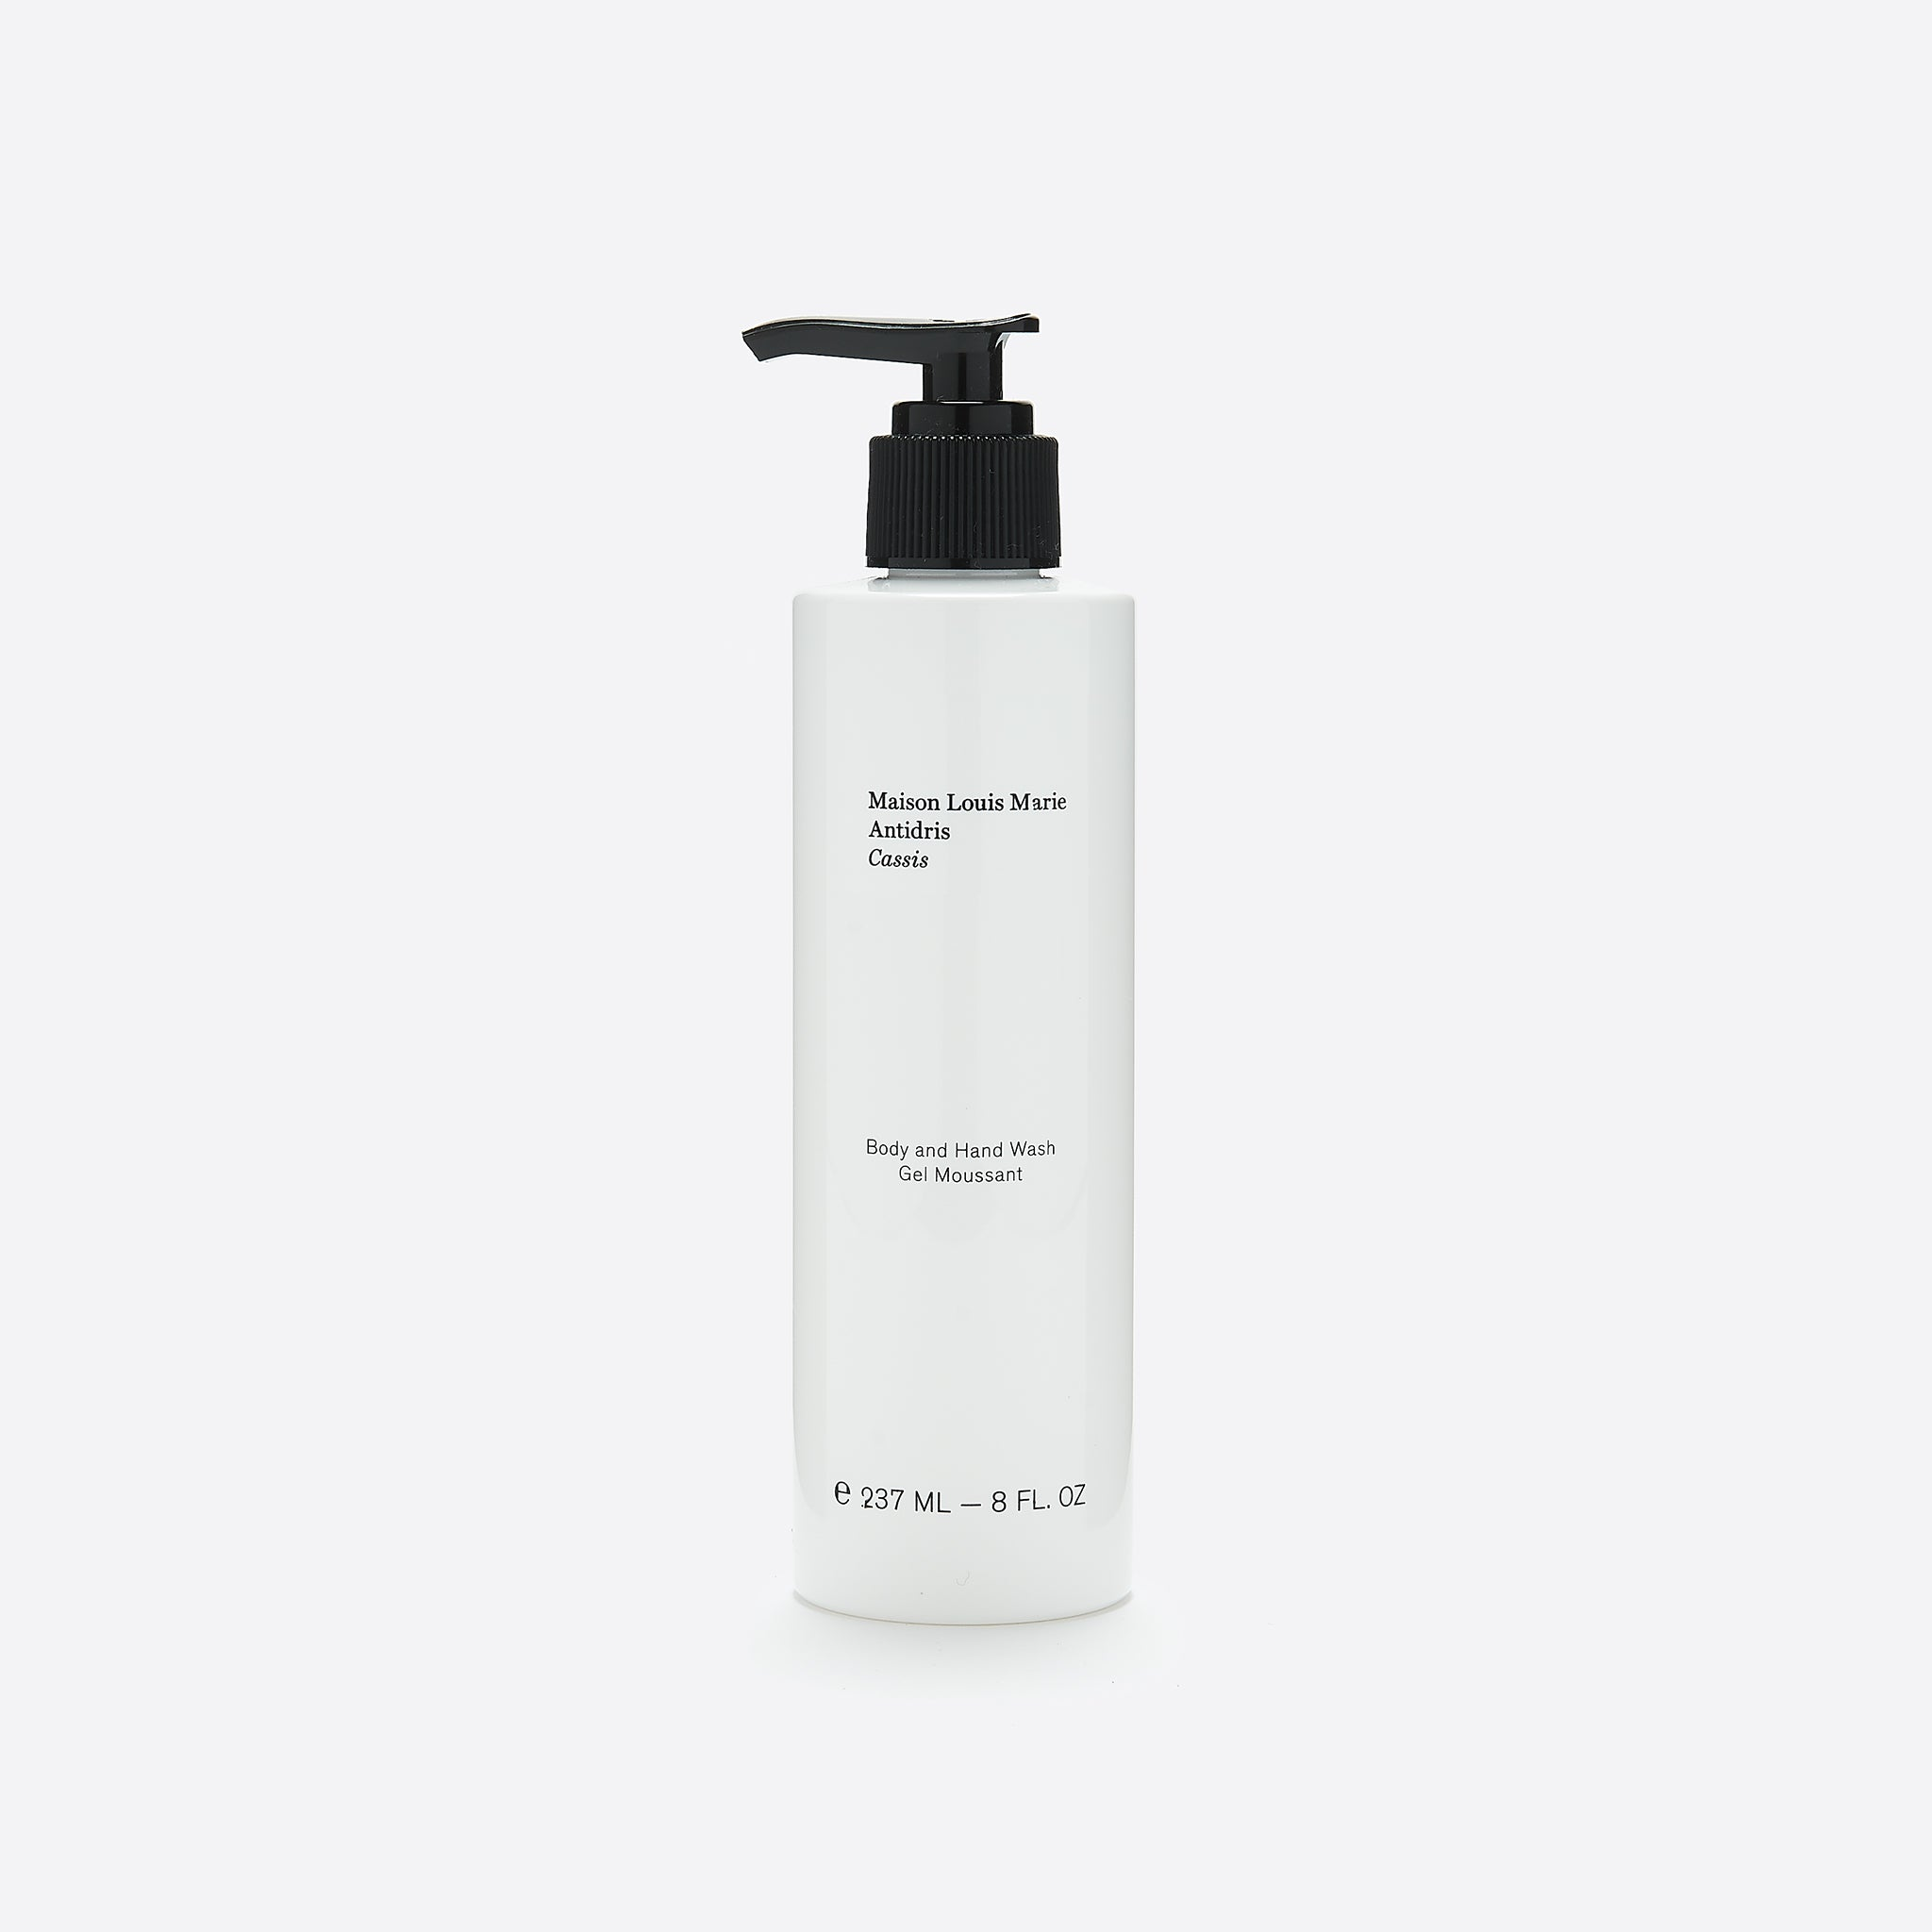 Maison Louis Marie Body and Hand Wash in Antidris Cassis